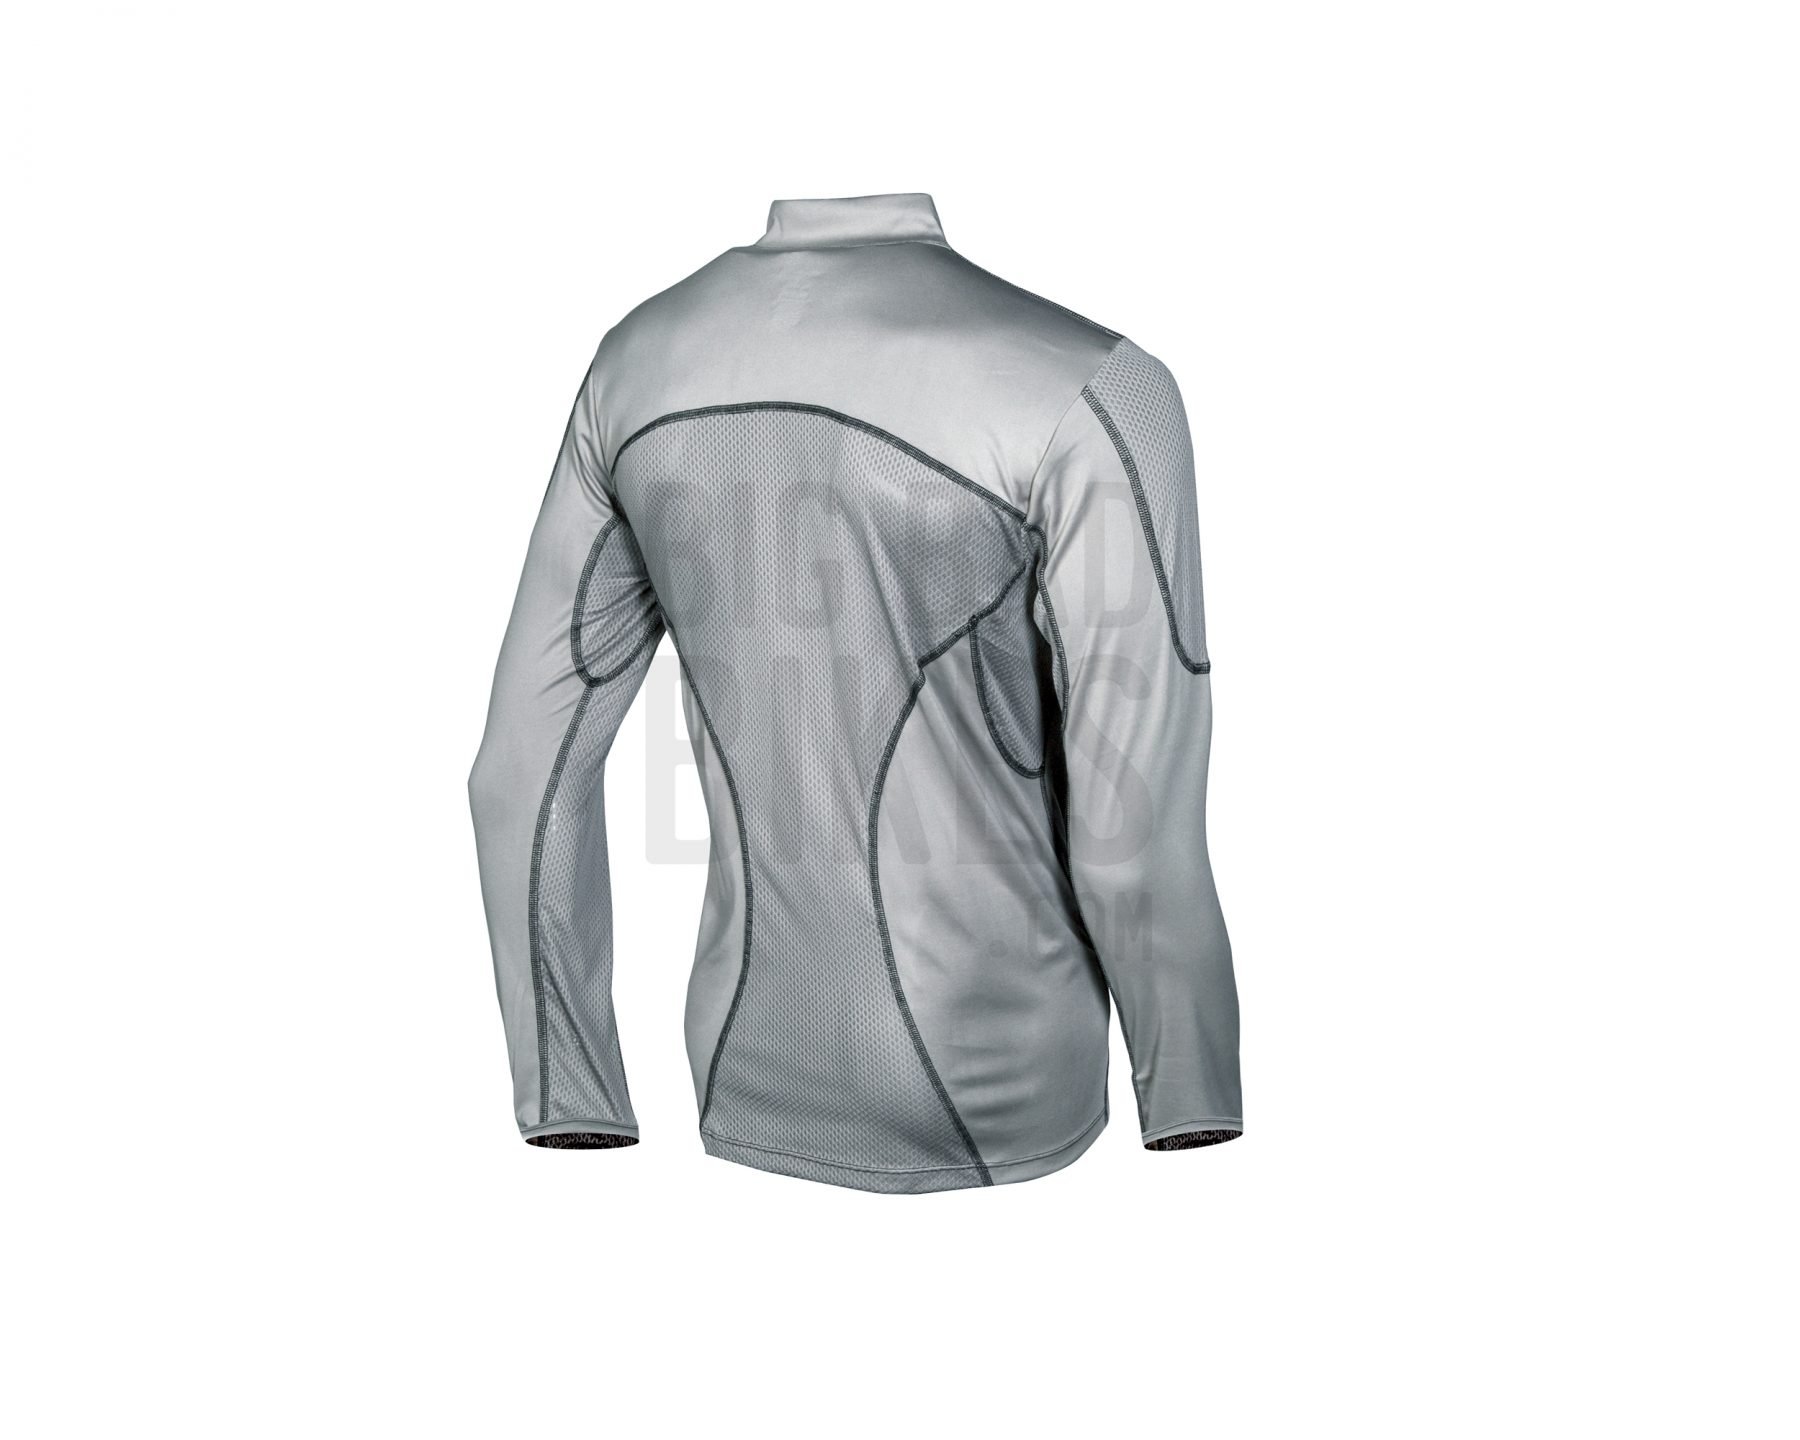 Tech Shirt Gry back